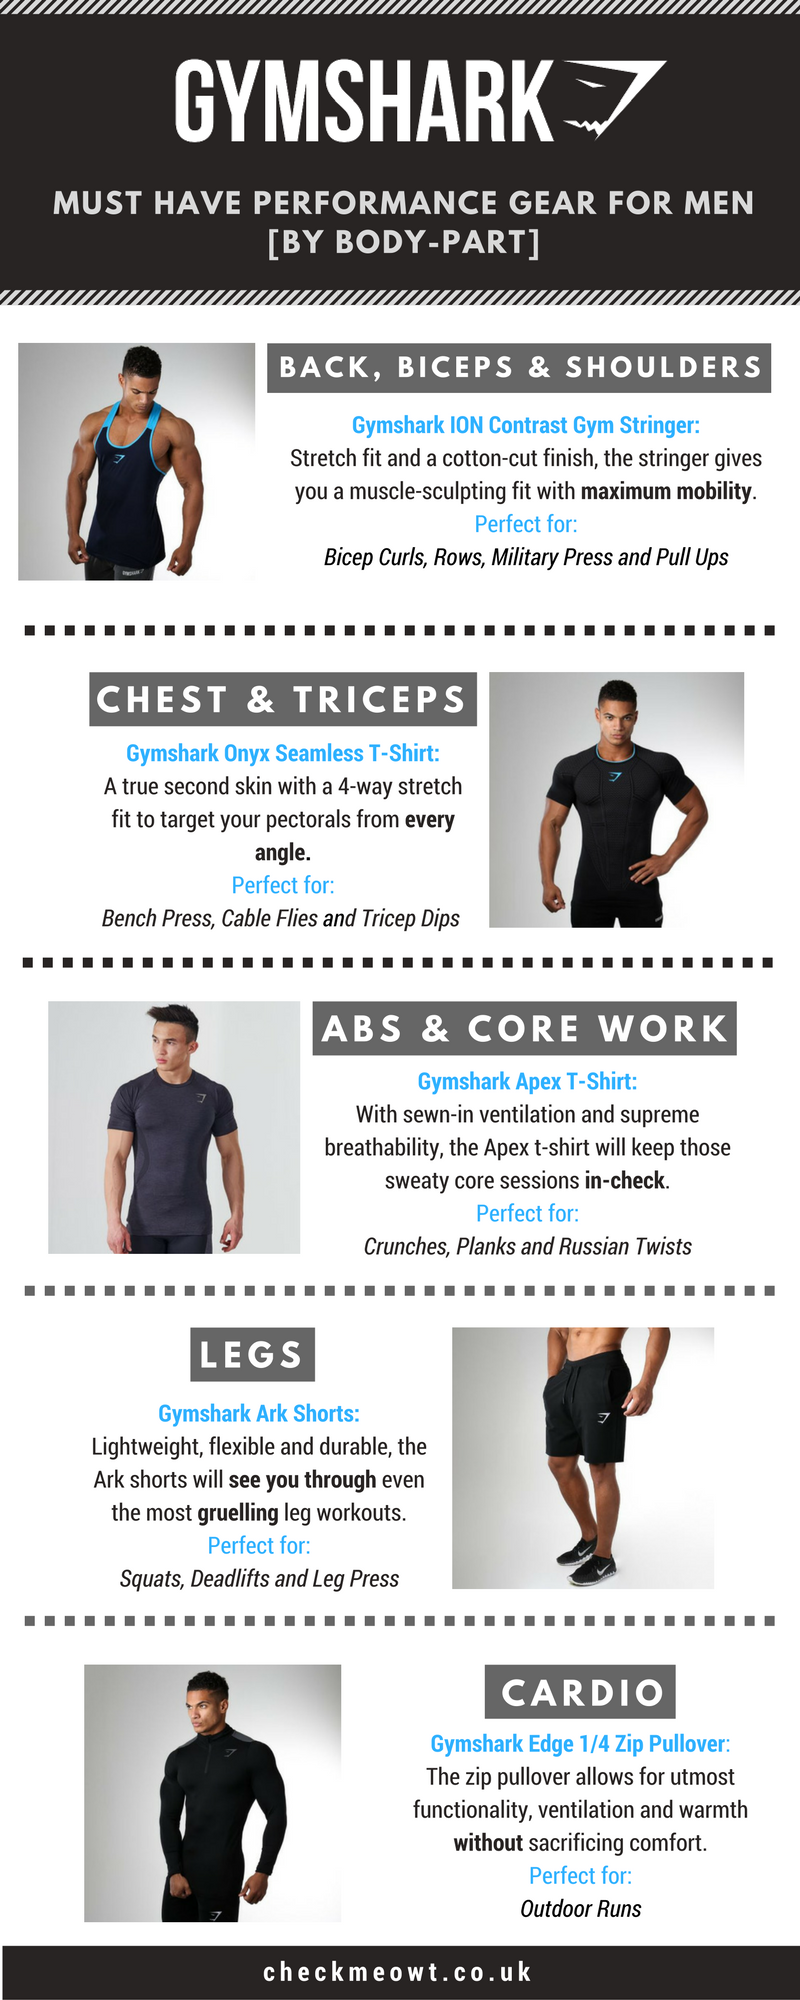 Gymshark Infographic [Must Have Performance Gear For Men]